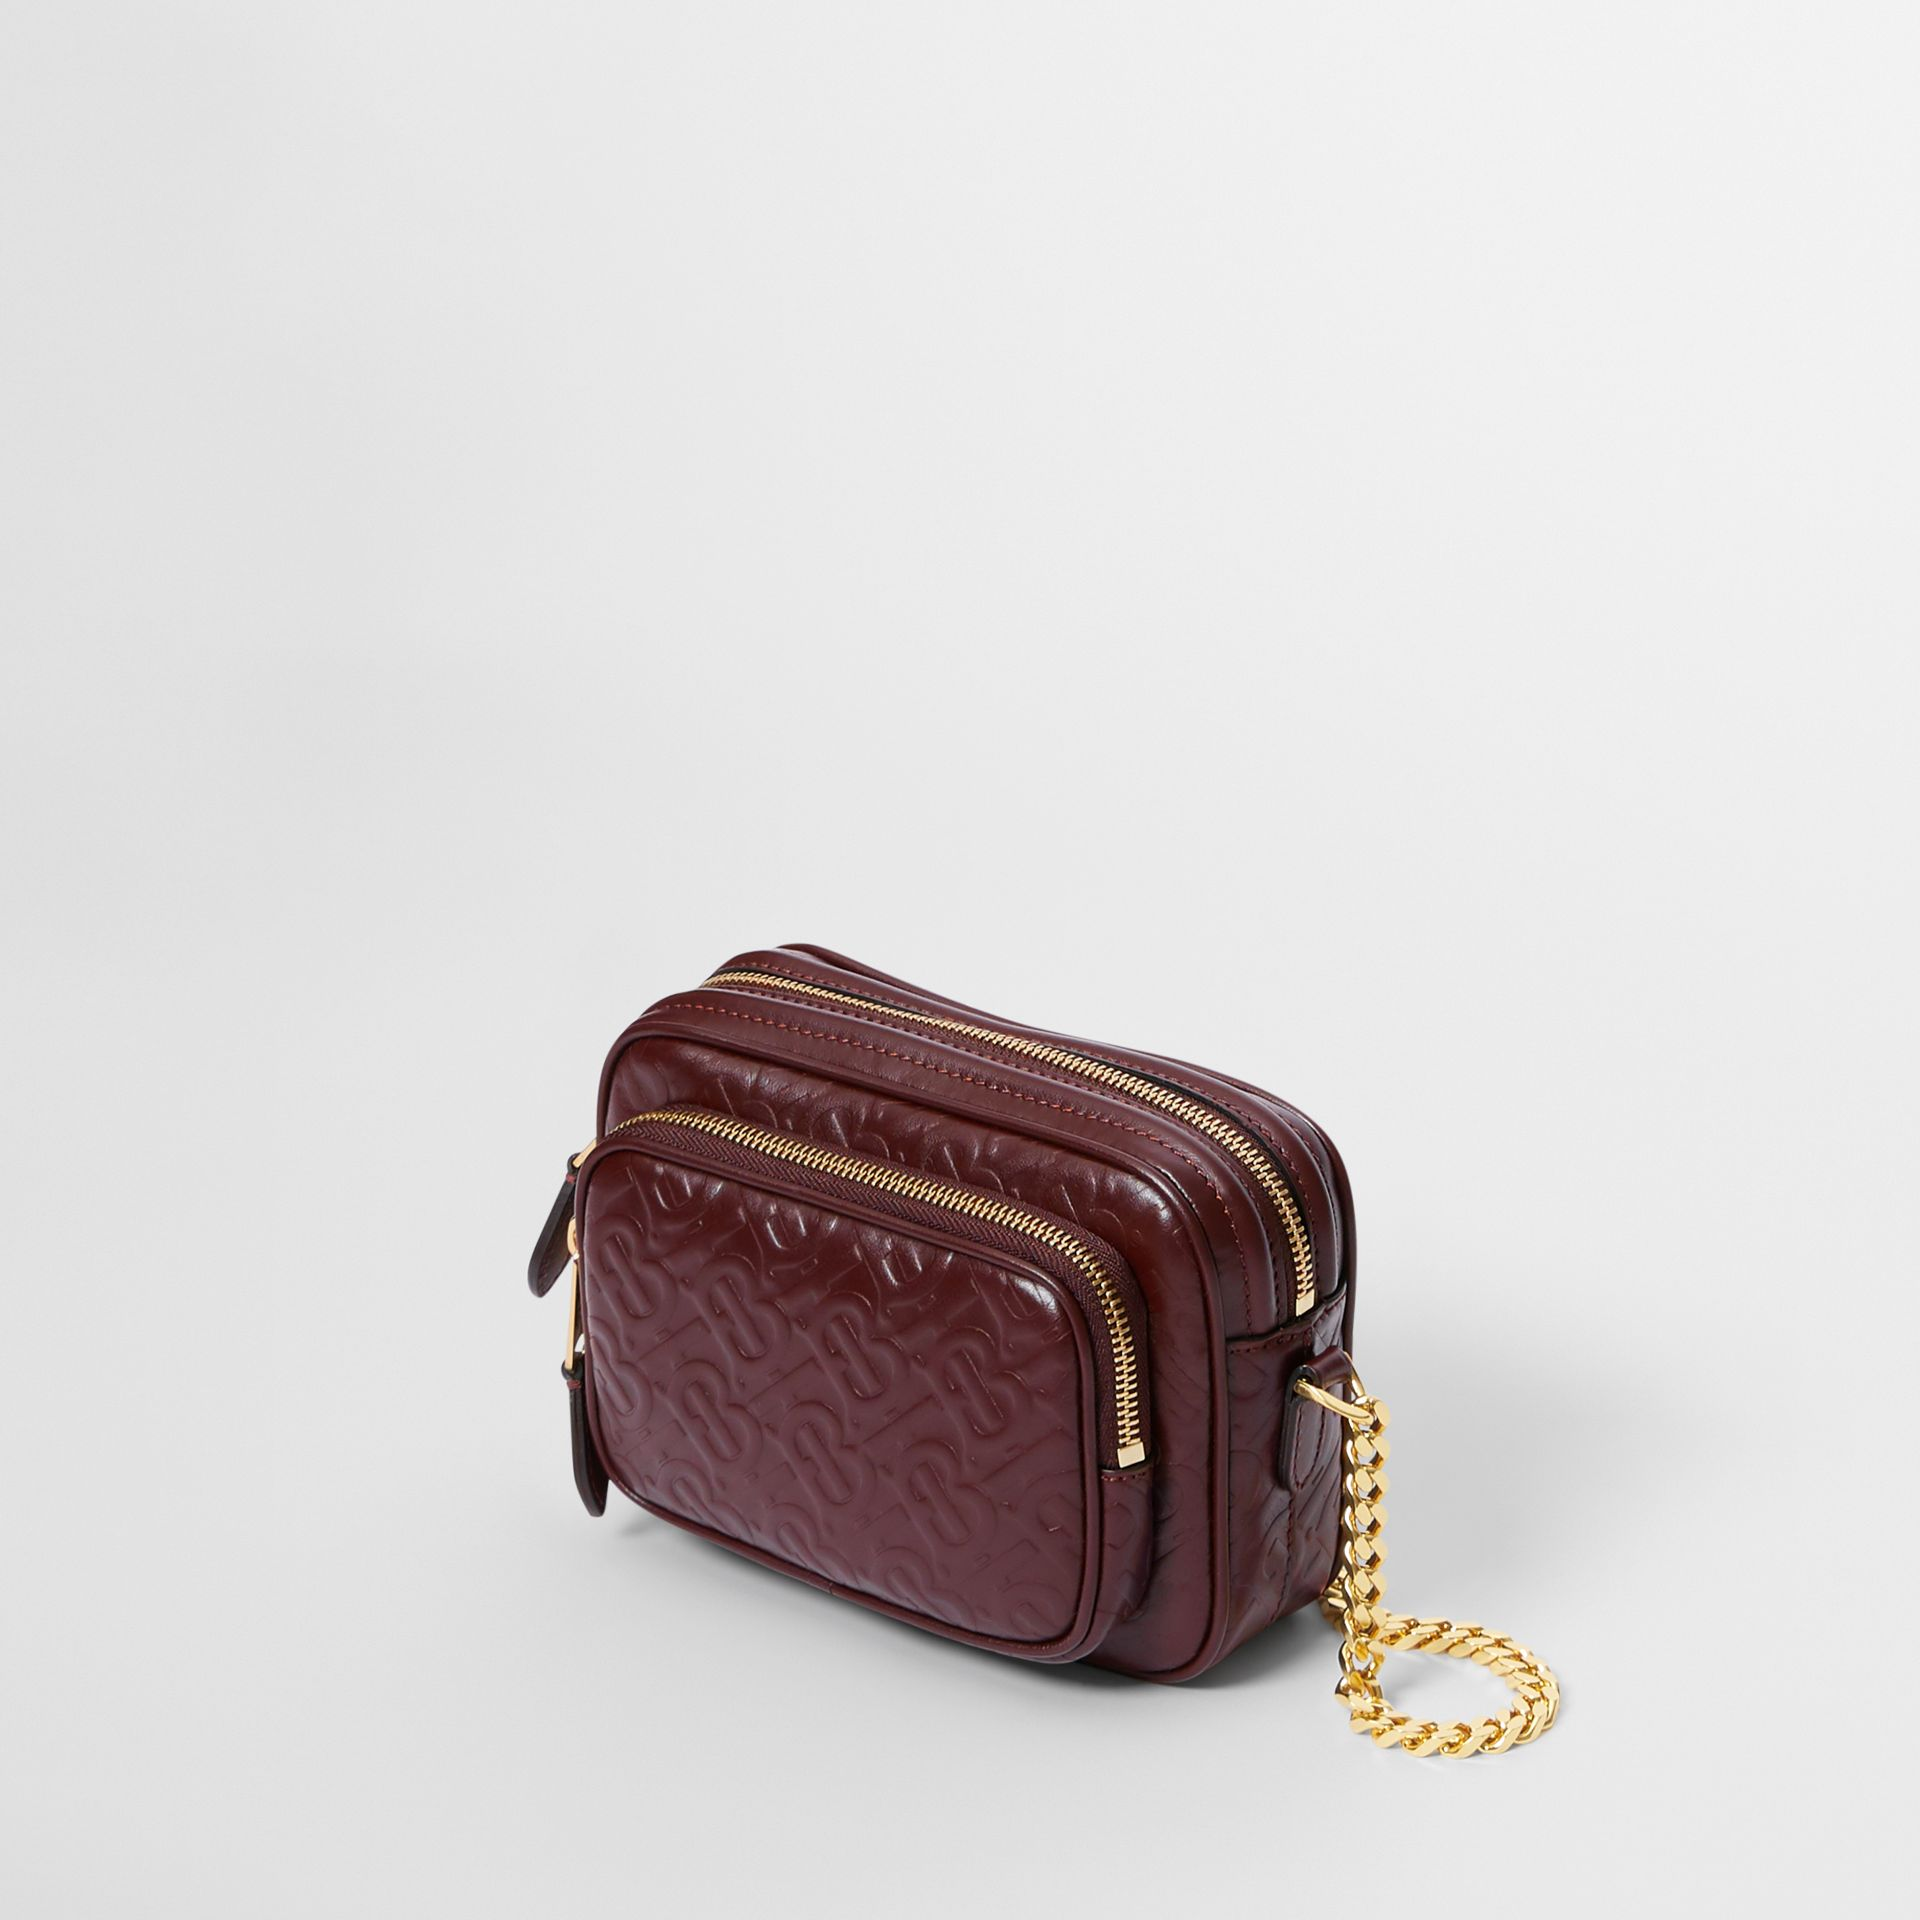 Monogram Leather Camera Bag in Dark Burgundy - Women | Burberry United States - gallery image 2